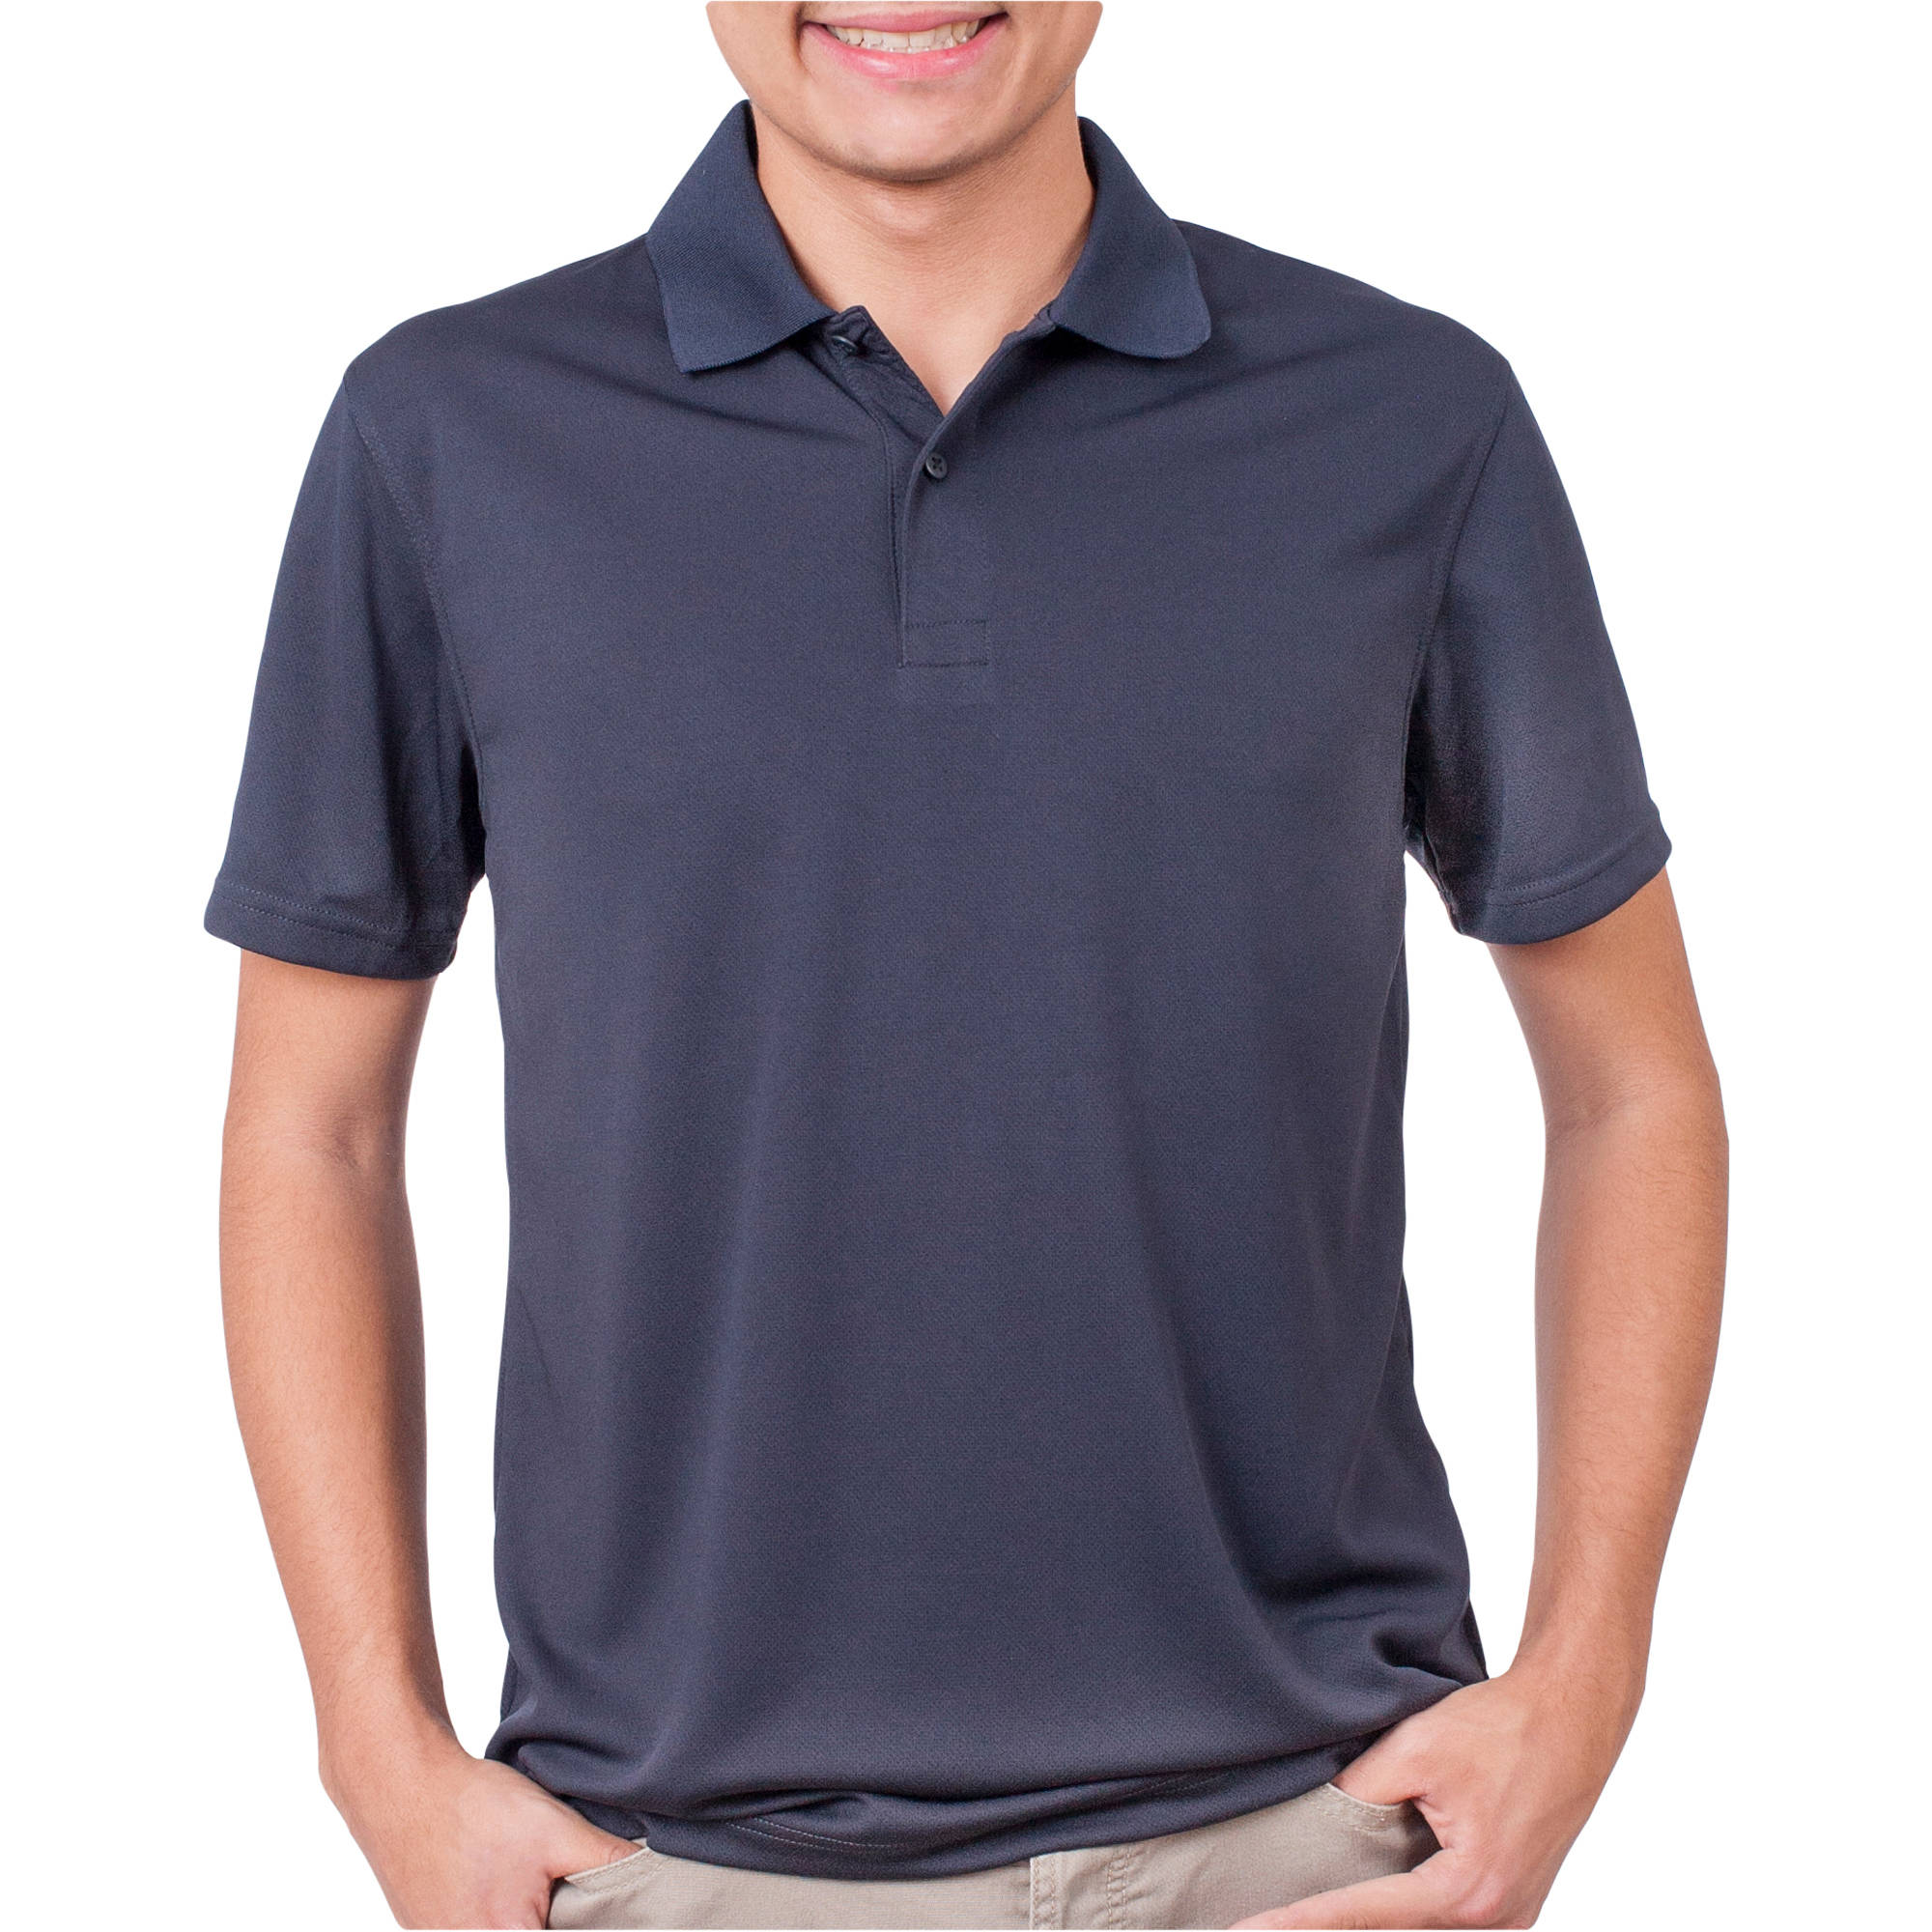 George Young Men's Short Sleeve Performance Polo